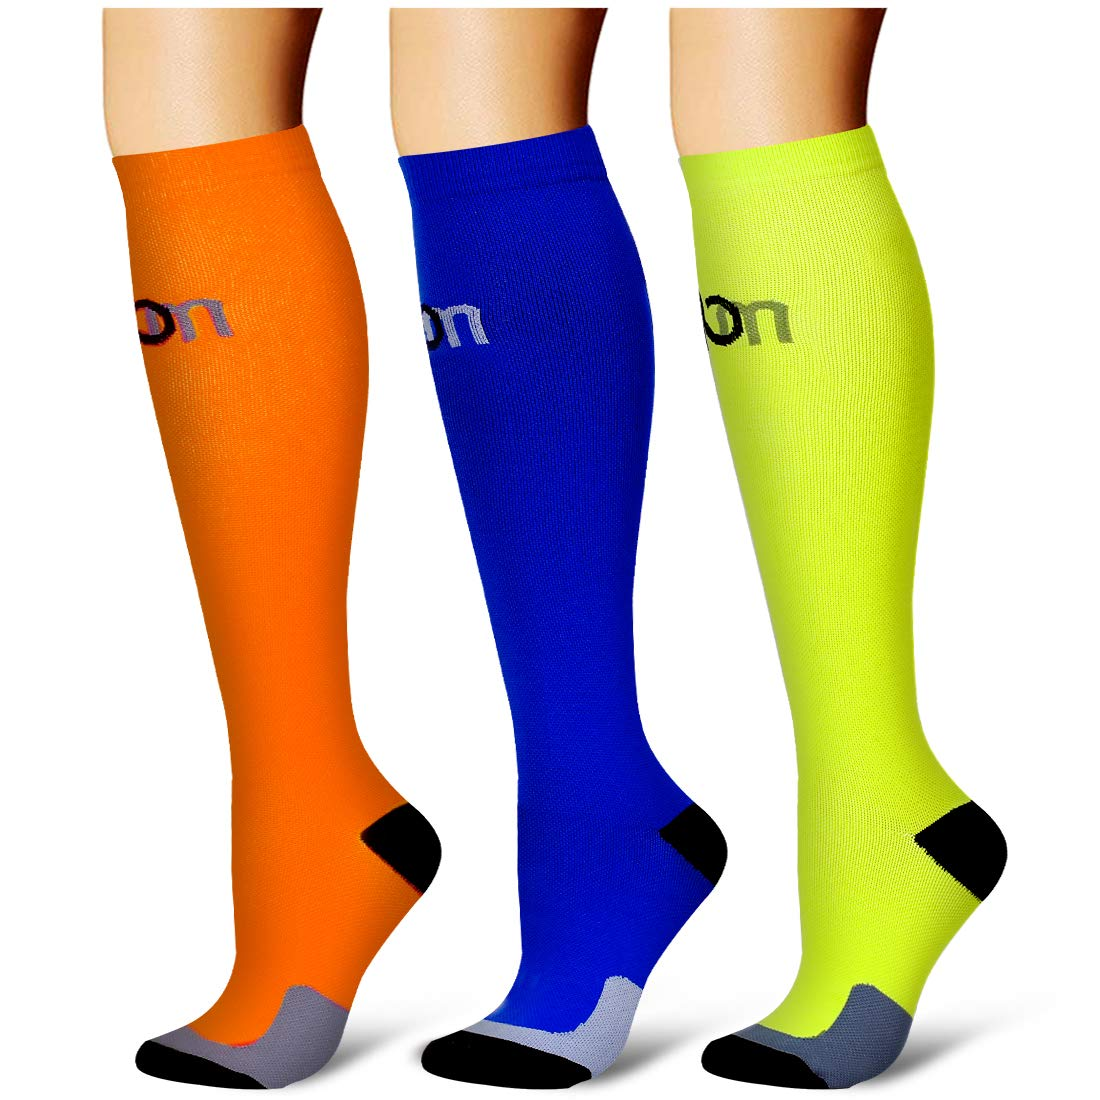 Laite Hebe Compression Socks,(3 Pairs) Compression Sock for Women & Men - Best for Running, Athletic Sports, Crossfit, Flight Travel(Multti-colors5-S/M) by Laite Hebe